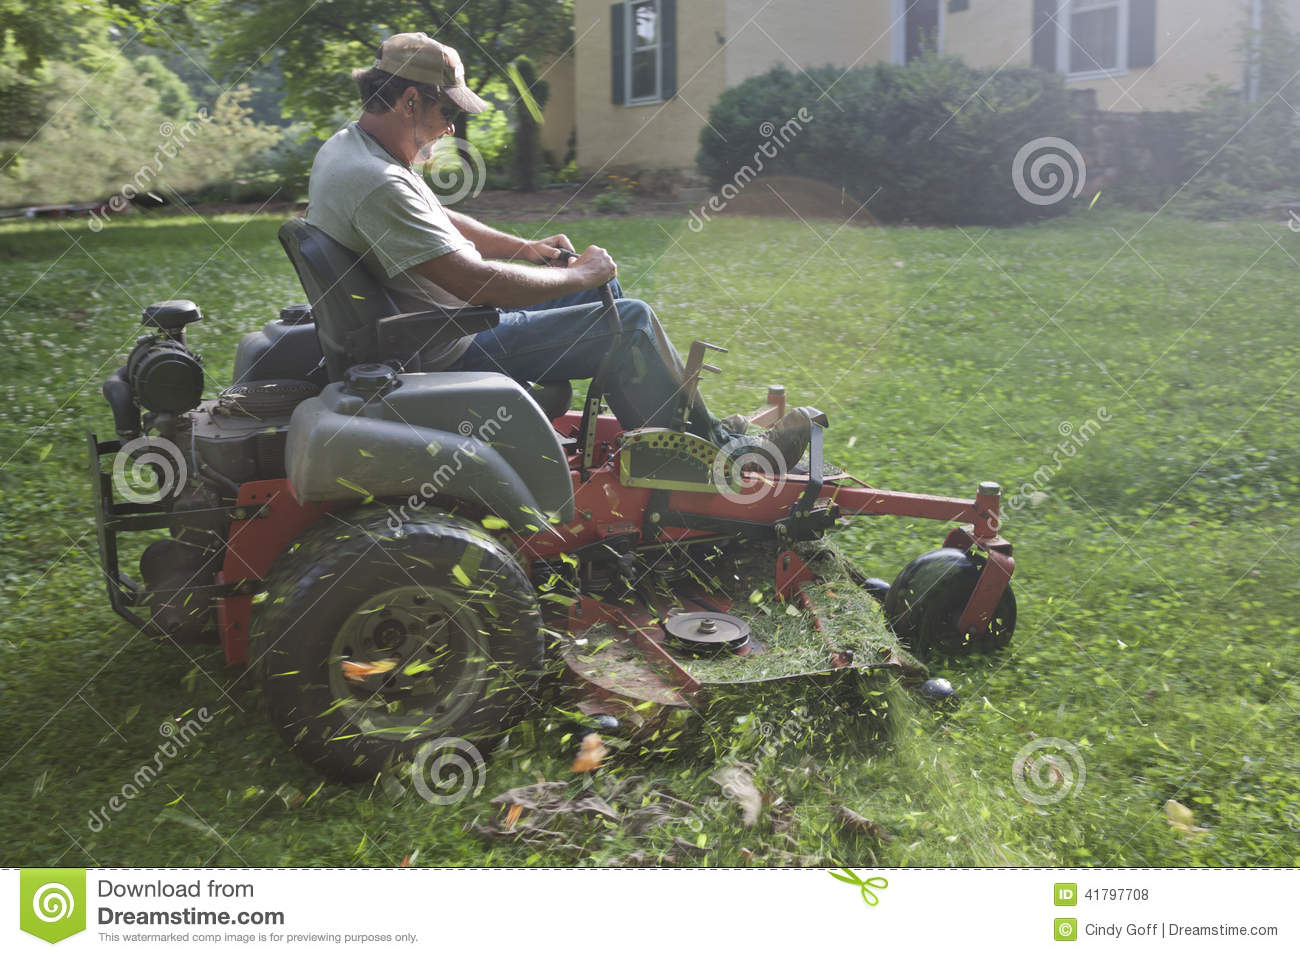 Landscaper on riding lawn mower stock photo image 41797708 for Lawn mower cutting grass